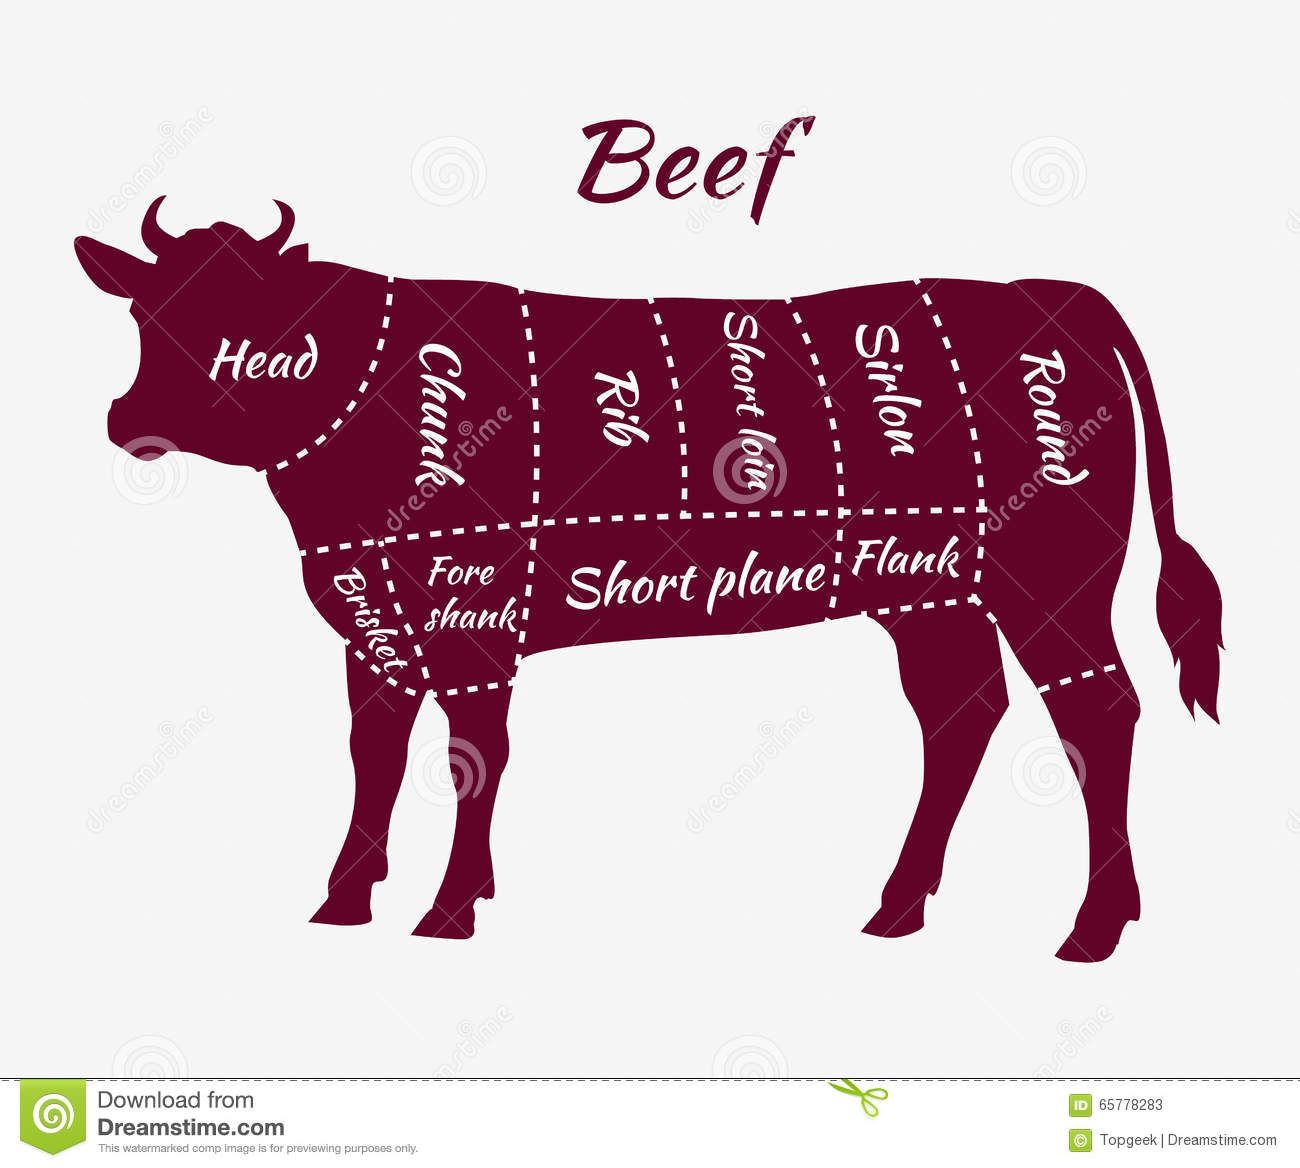 Scheme of beef cuts for steak and roast stock vector scheme of beef cuts for steak and roast pooptronica